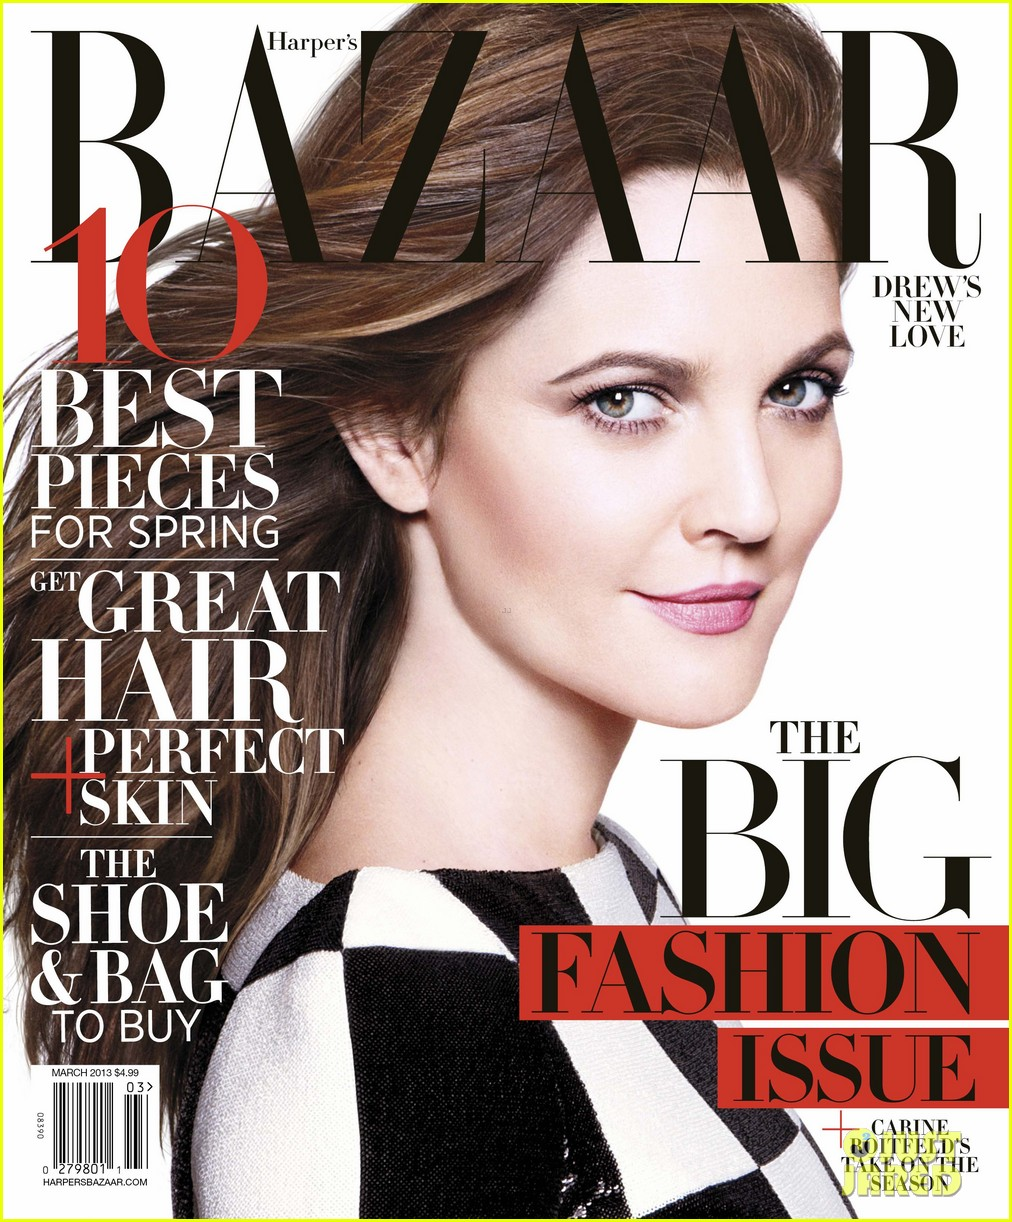 Drew Barrymore wearing Louis Vuitton for Harper's Bazaar 2013